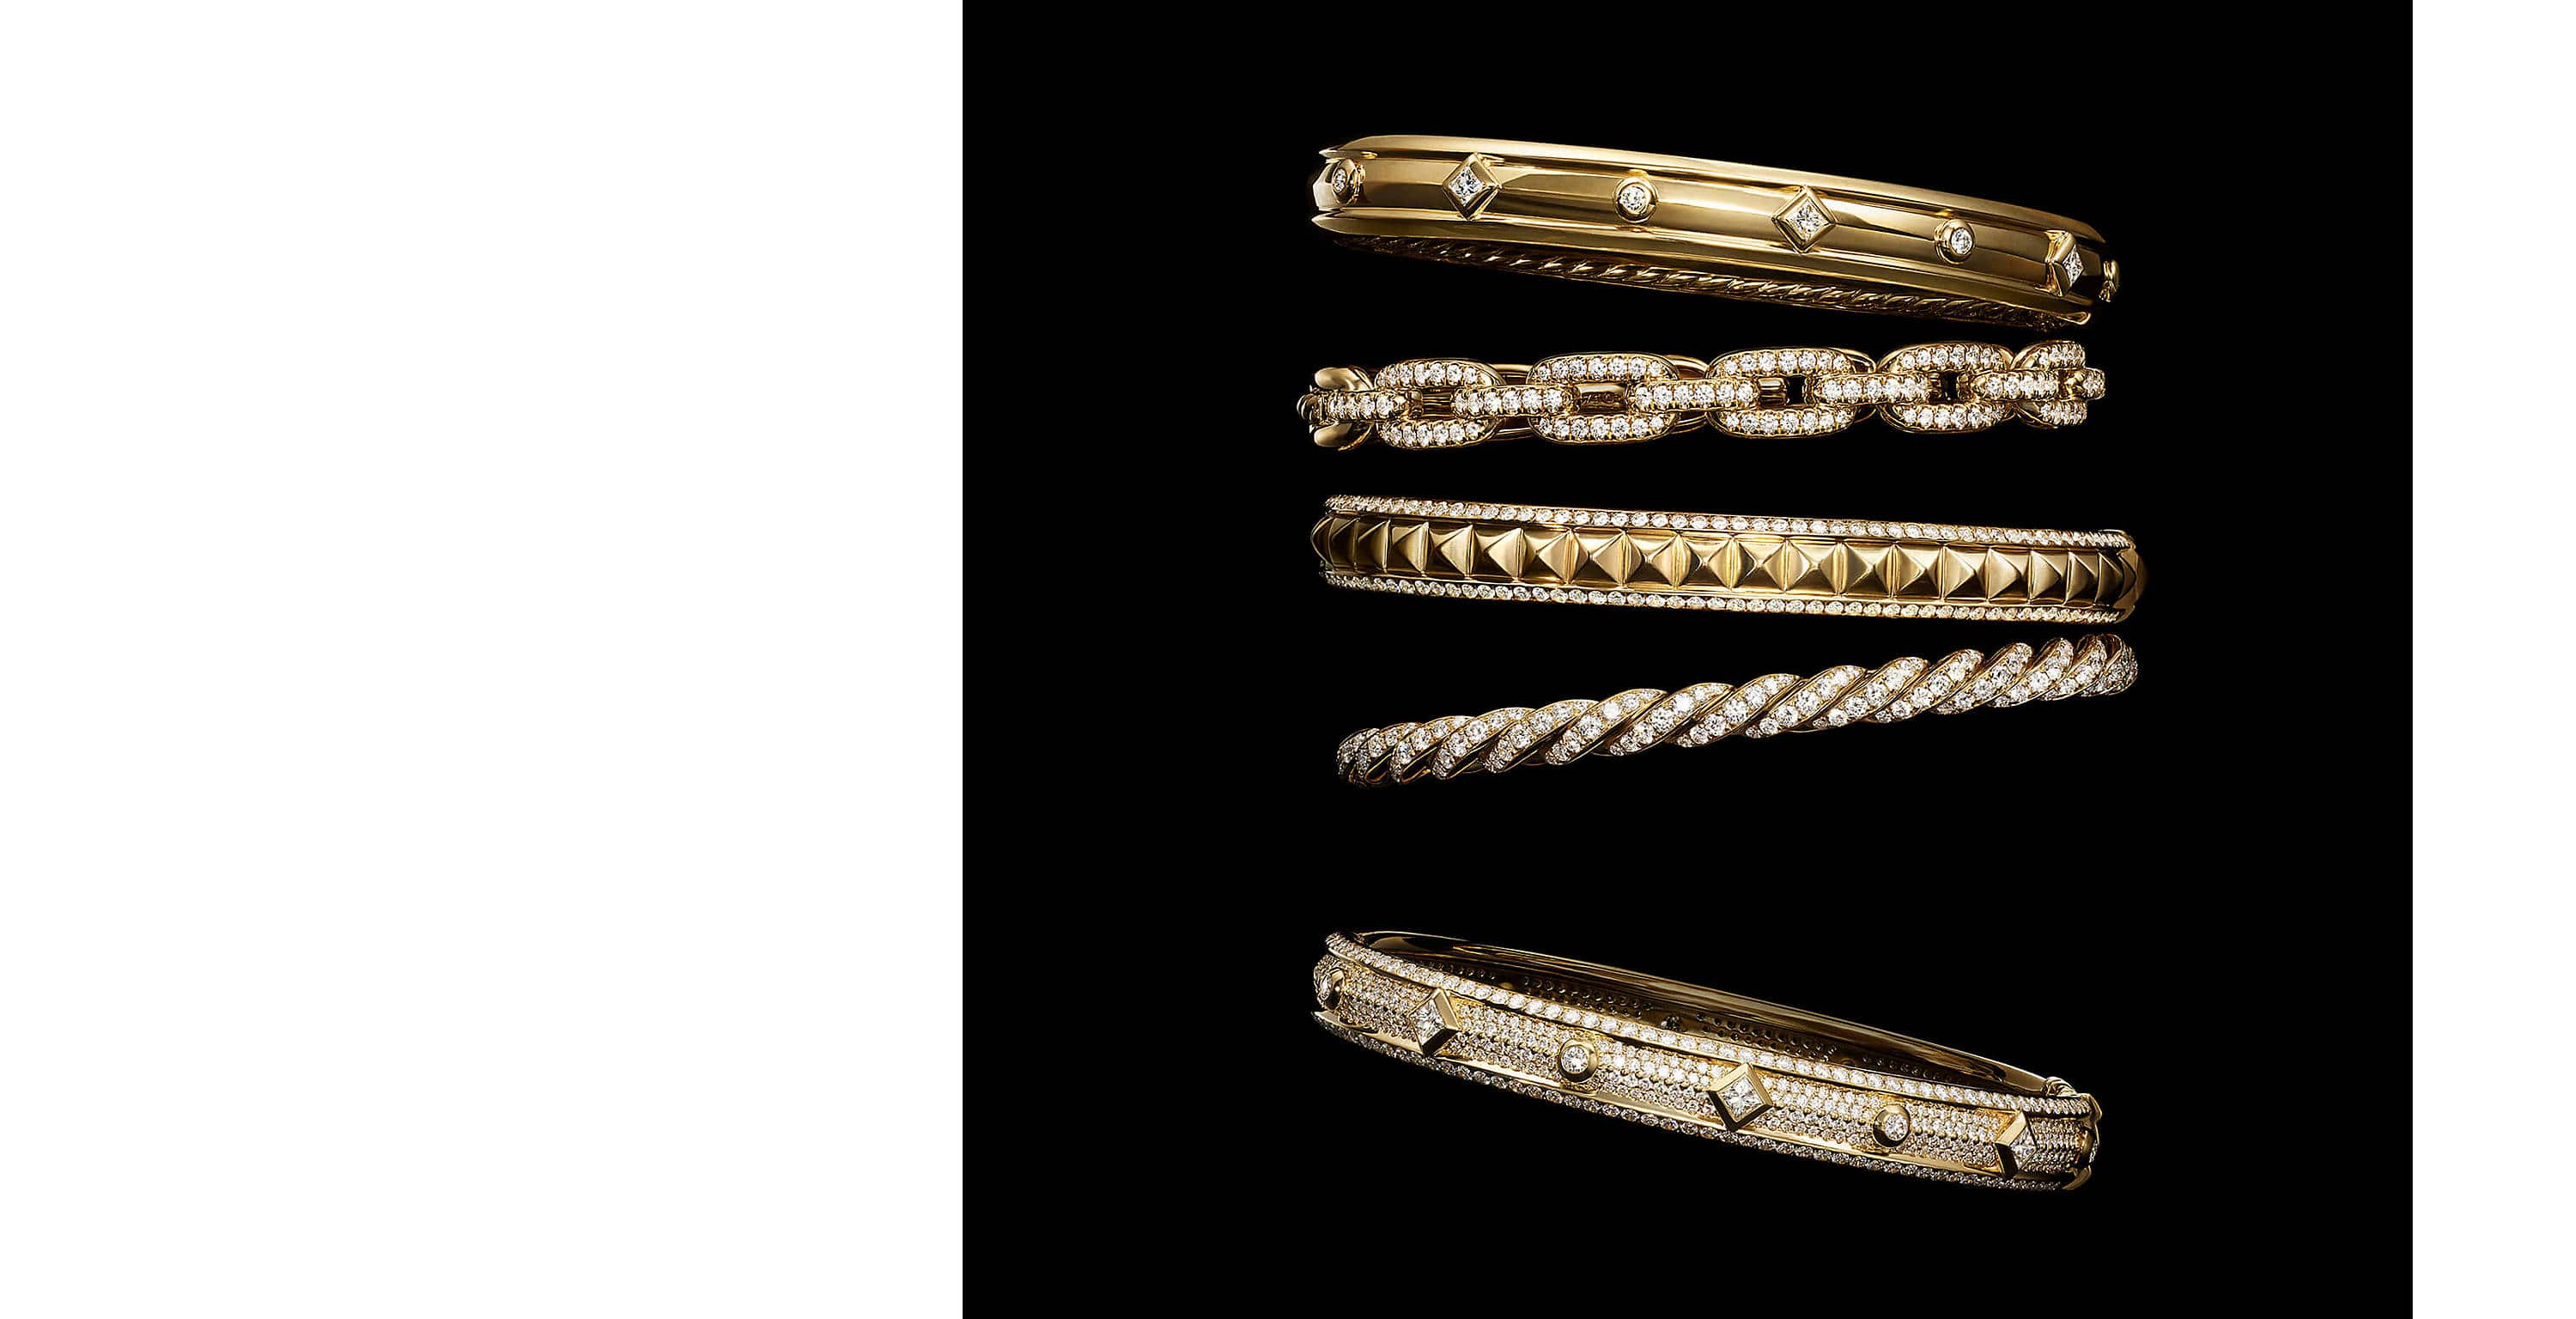 A color photo shows a vertical stack of four David Yurman women's bracelets from the Modern Renaissance, Stax and Pavéflex collections floating in front of a starry night sky. The jewelry is crafted from 18K yellow gold with diamonds